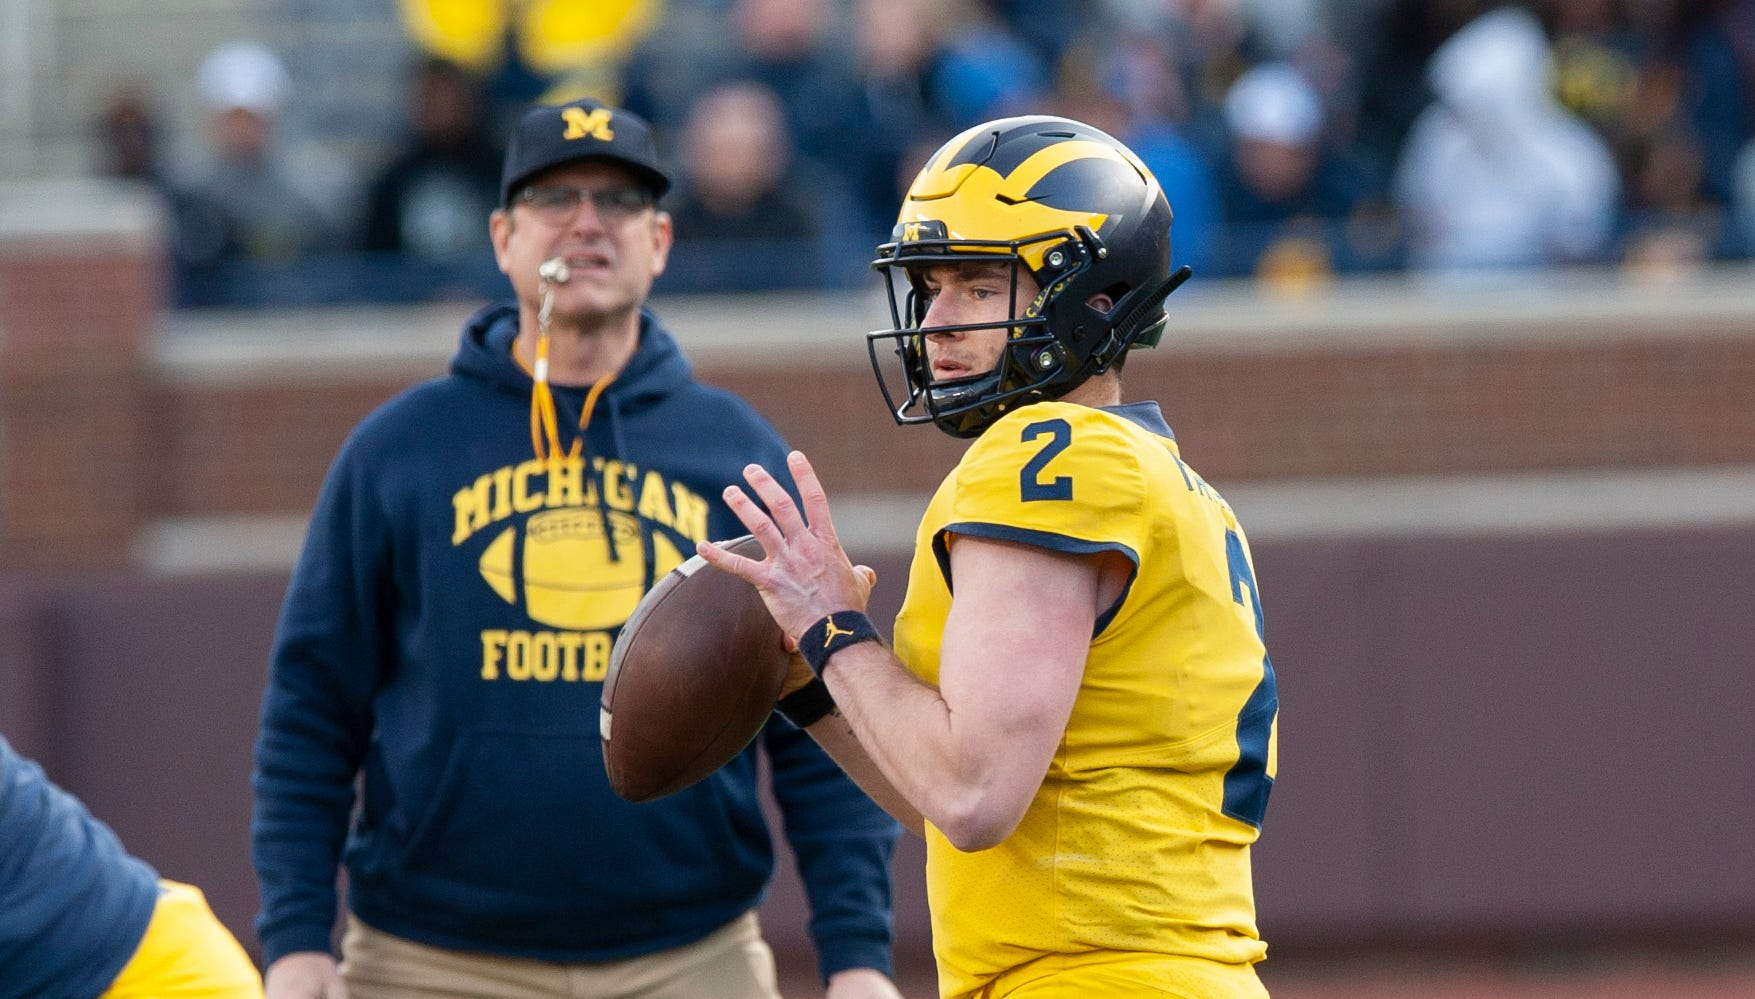 'It's night and day': Michigan QBs spring to life in new offensive scheme